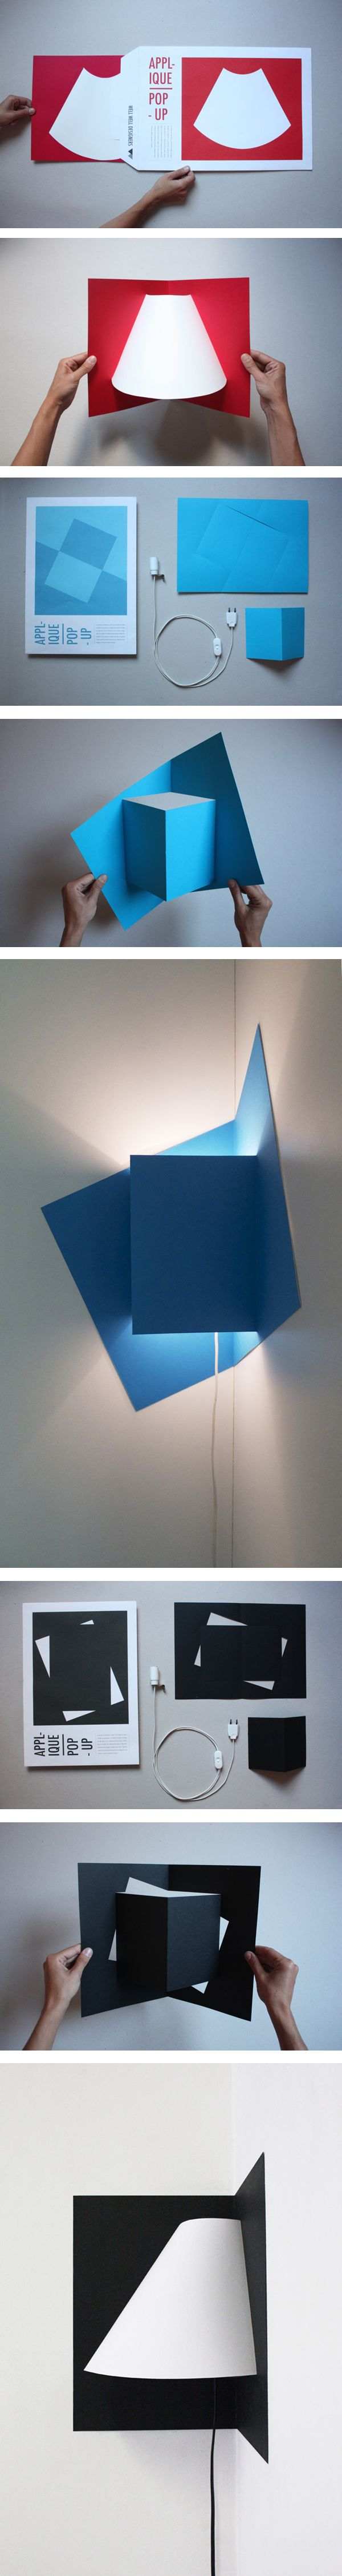 luz de esquiNa despLegable / pop-up corNer lighT, Well Well Designers.